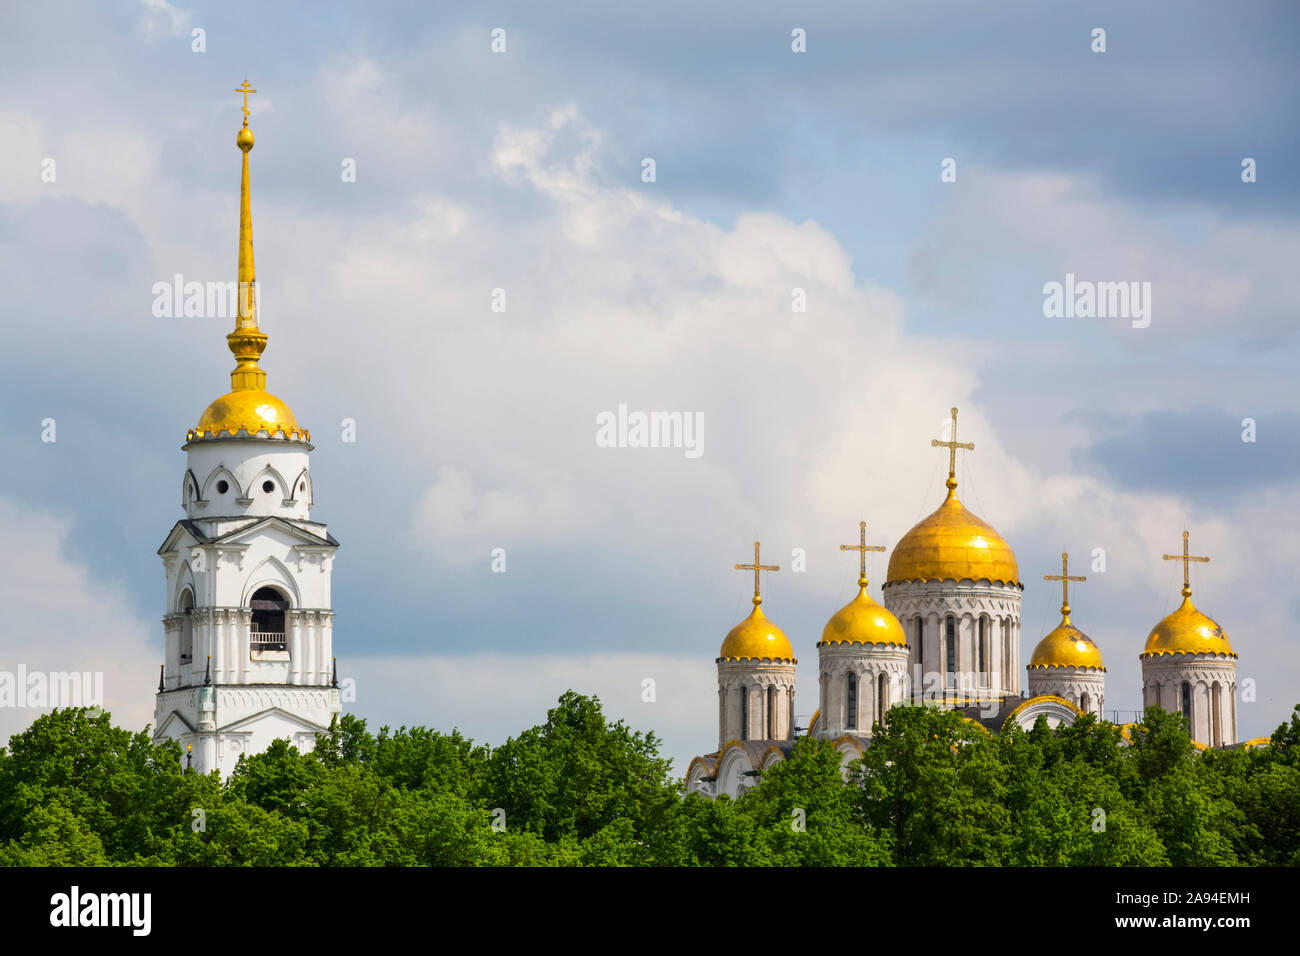 Assumption Cathedral with bell tower; Vladimir, Vladimir Oblast, Russia Stock Photo